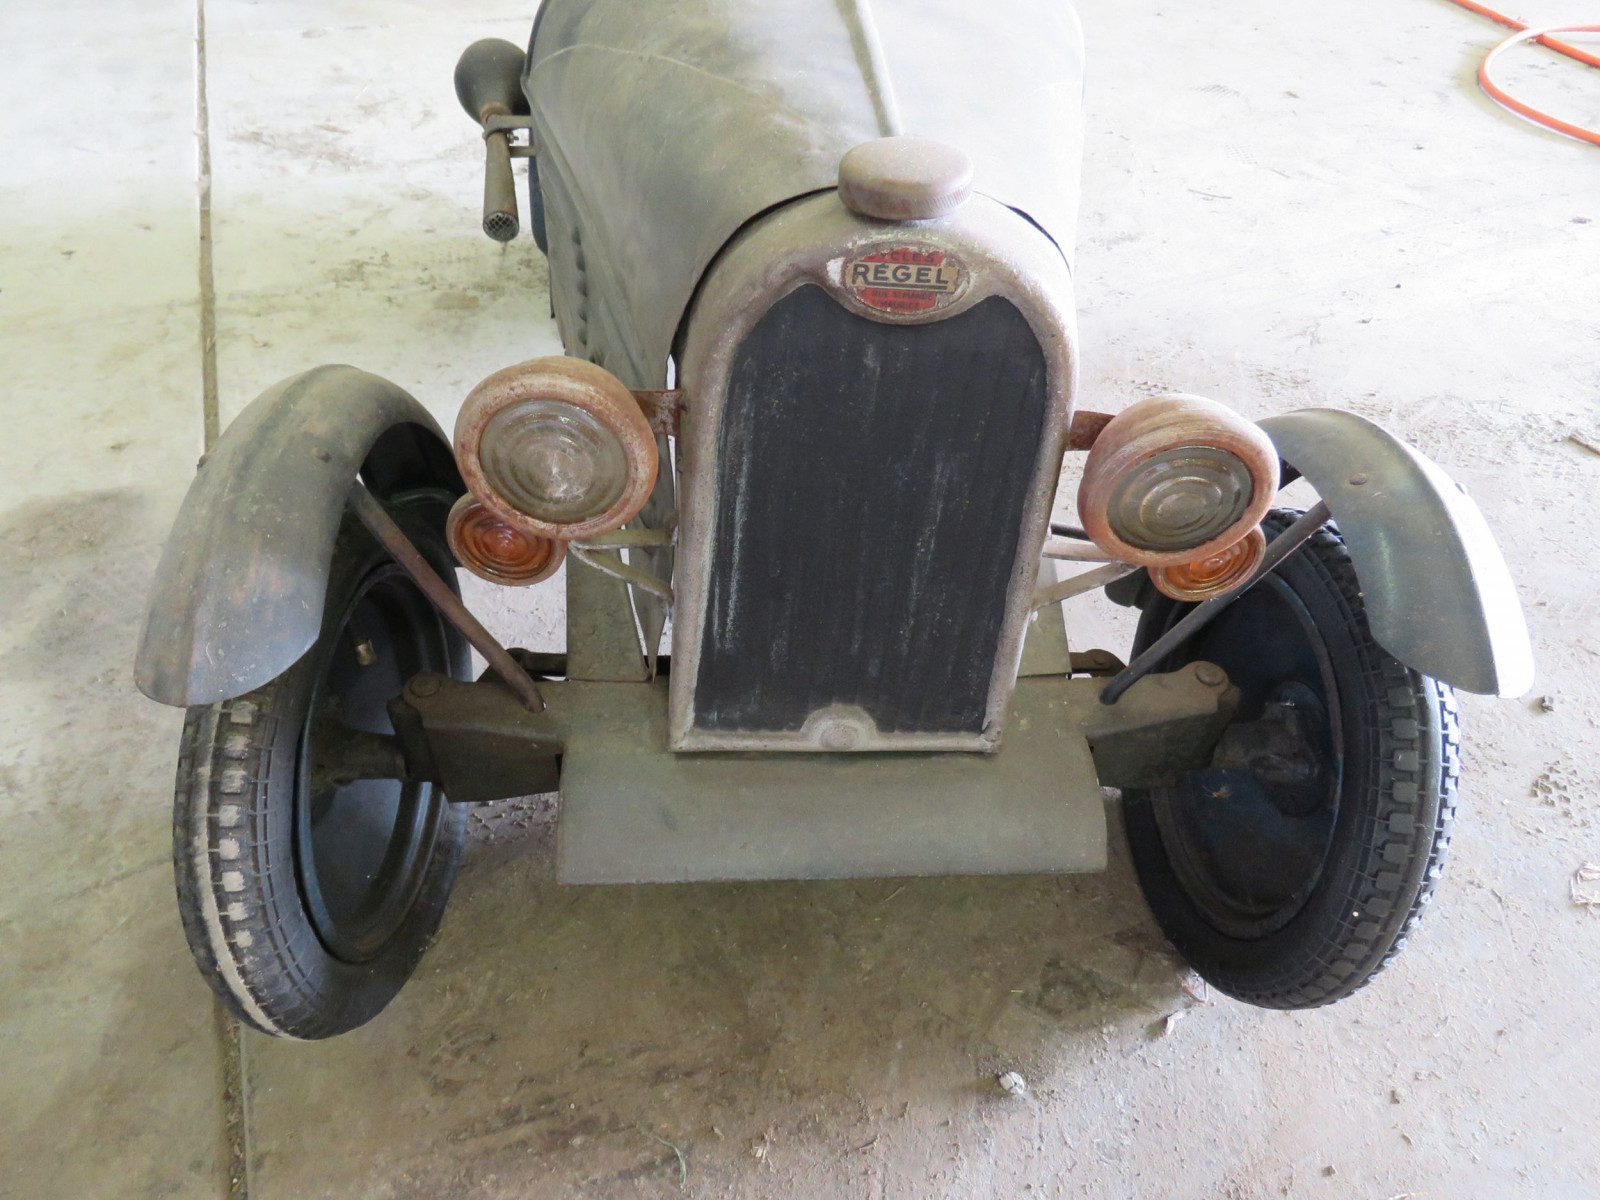 Vintage Regal Cycles Roadster Pedal Car - Image 4